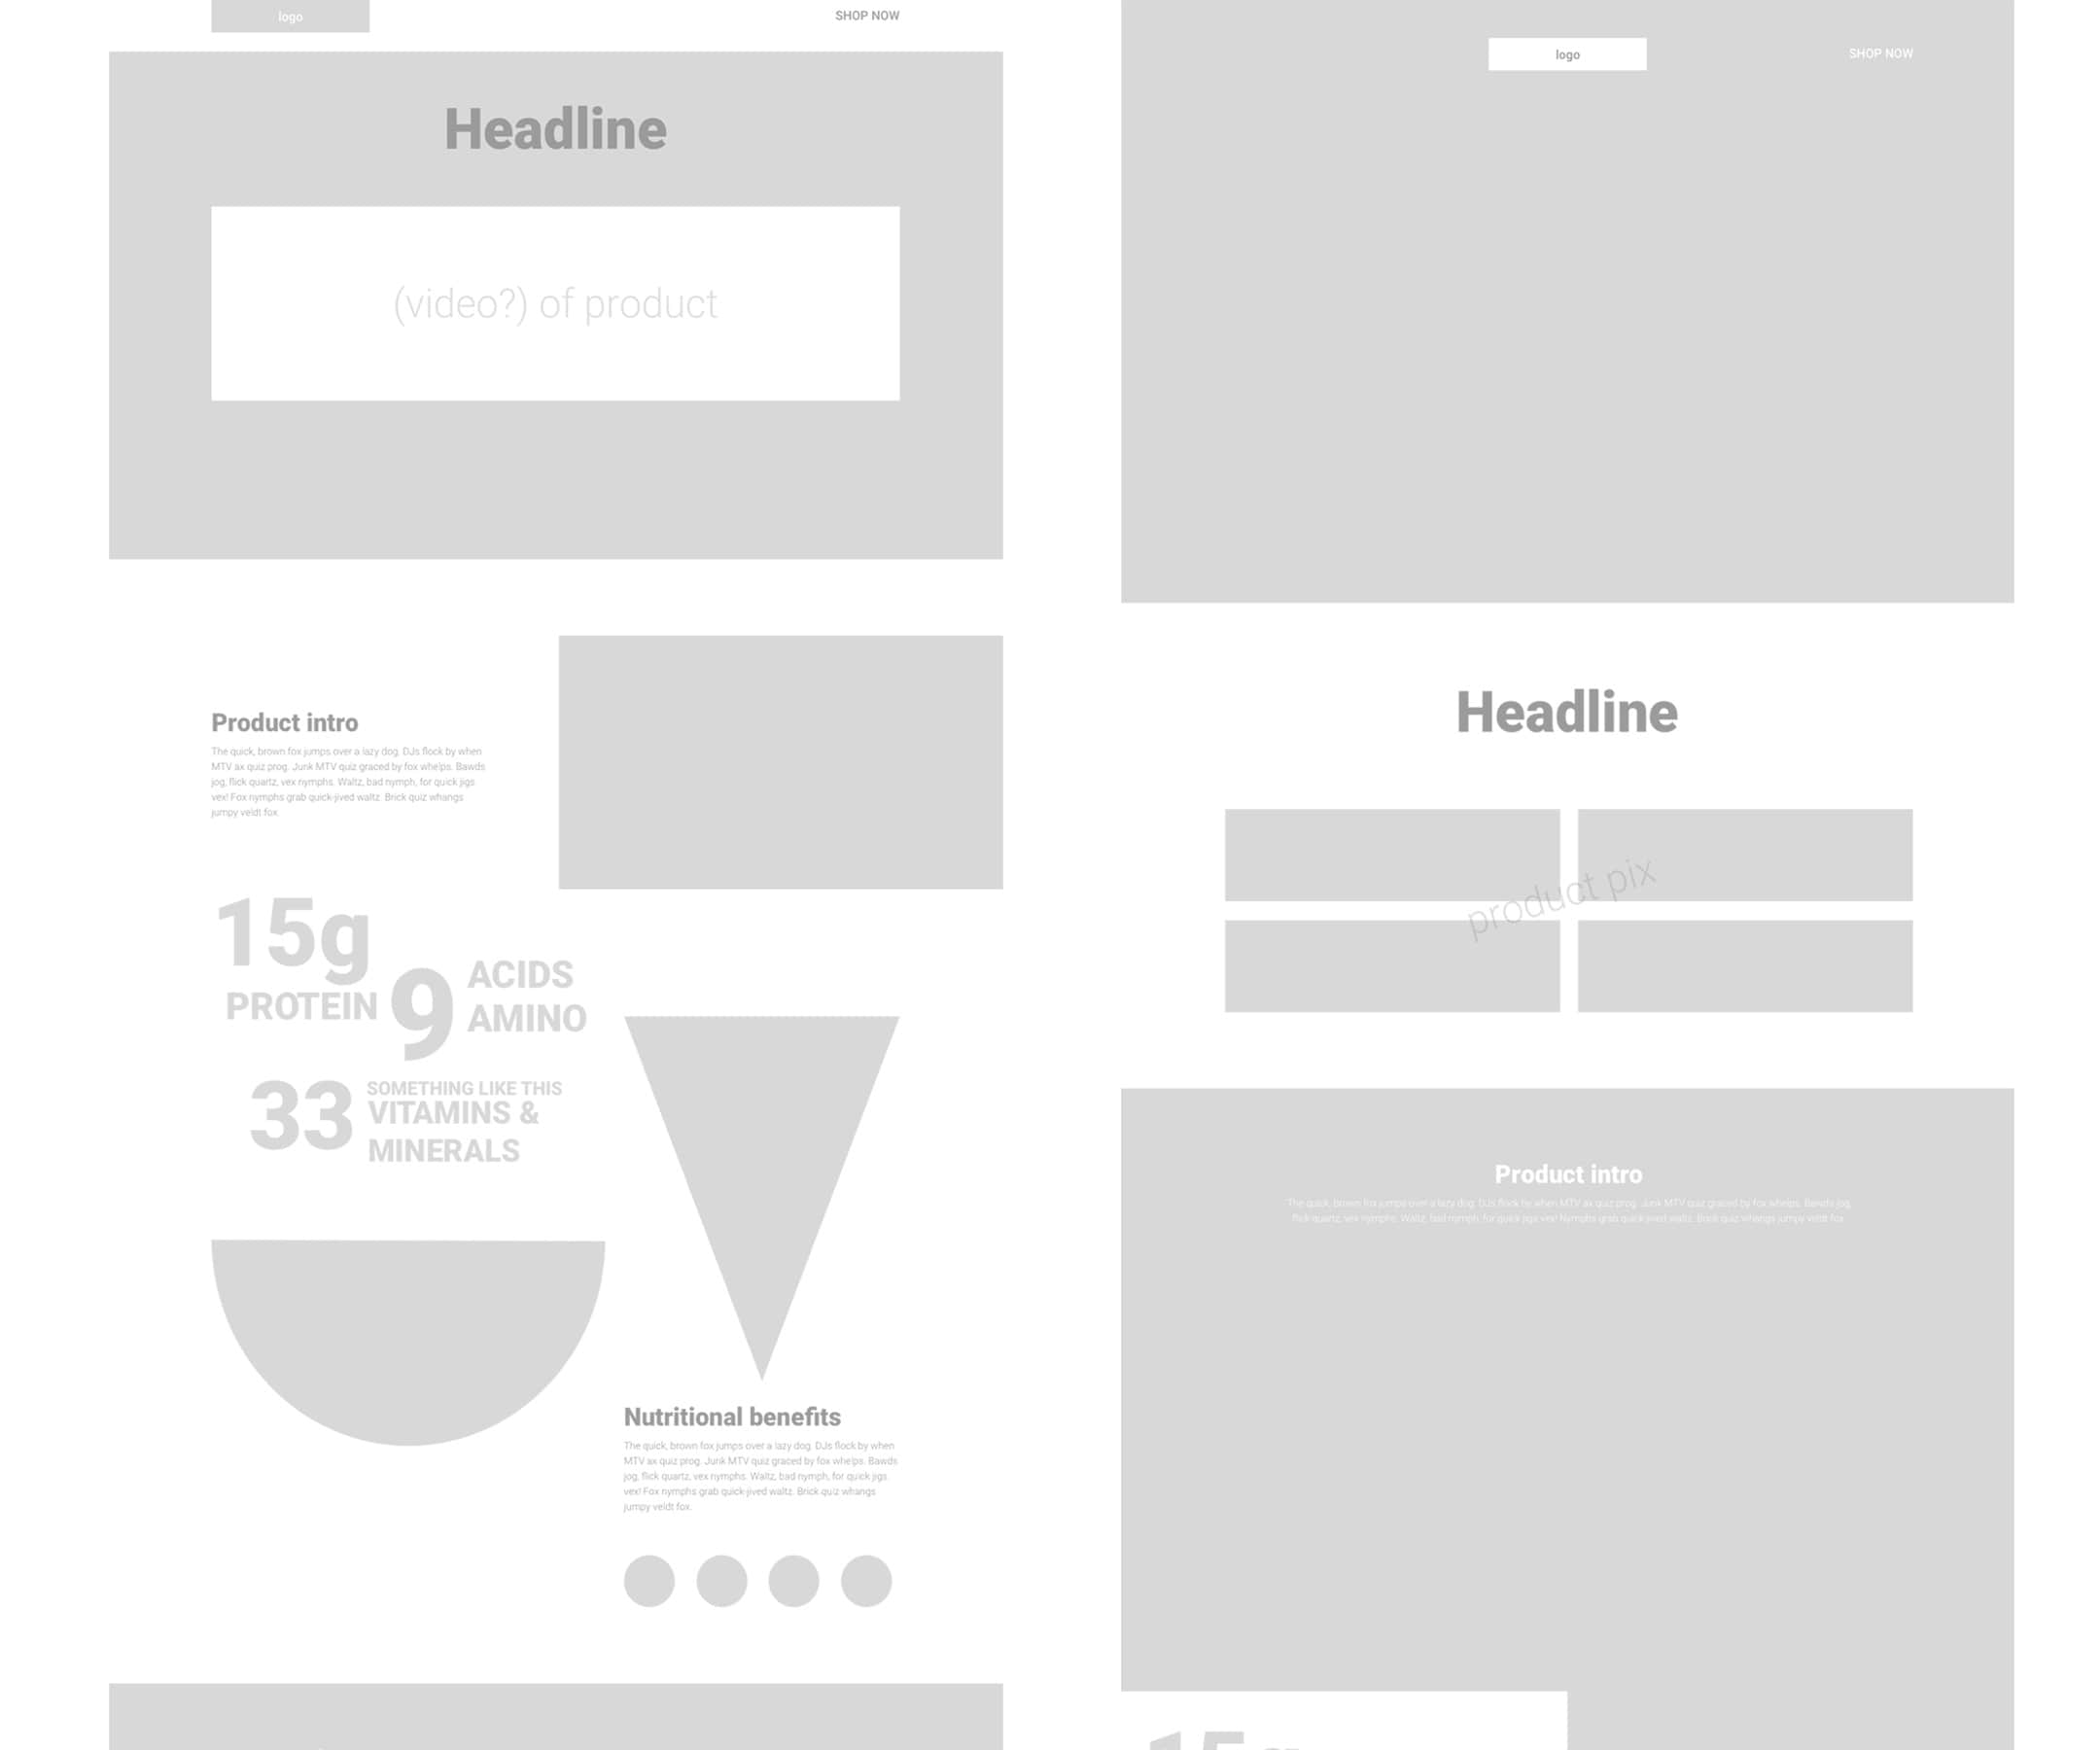 website low fidelity mockups